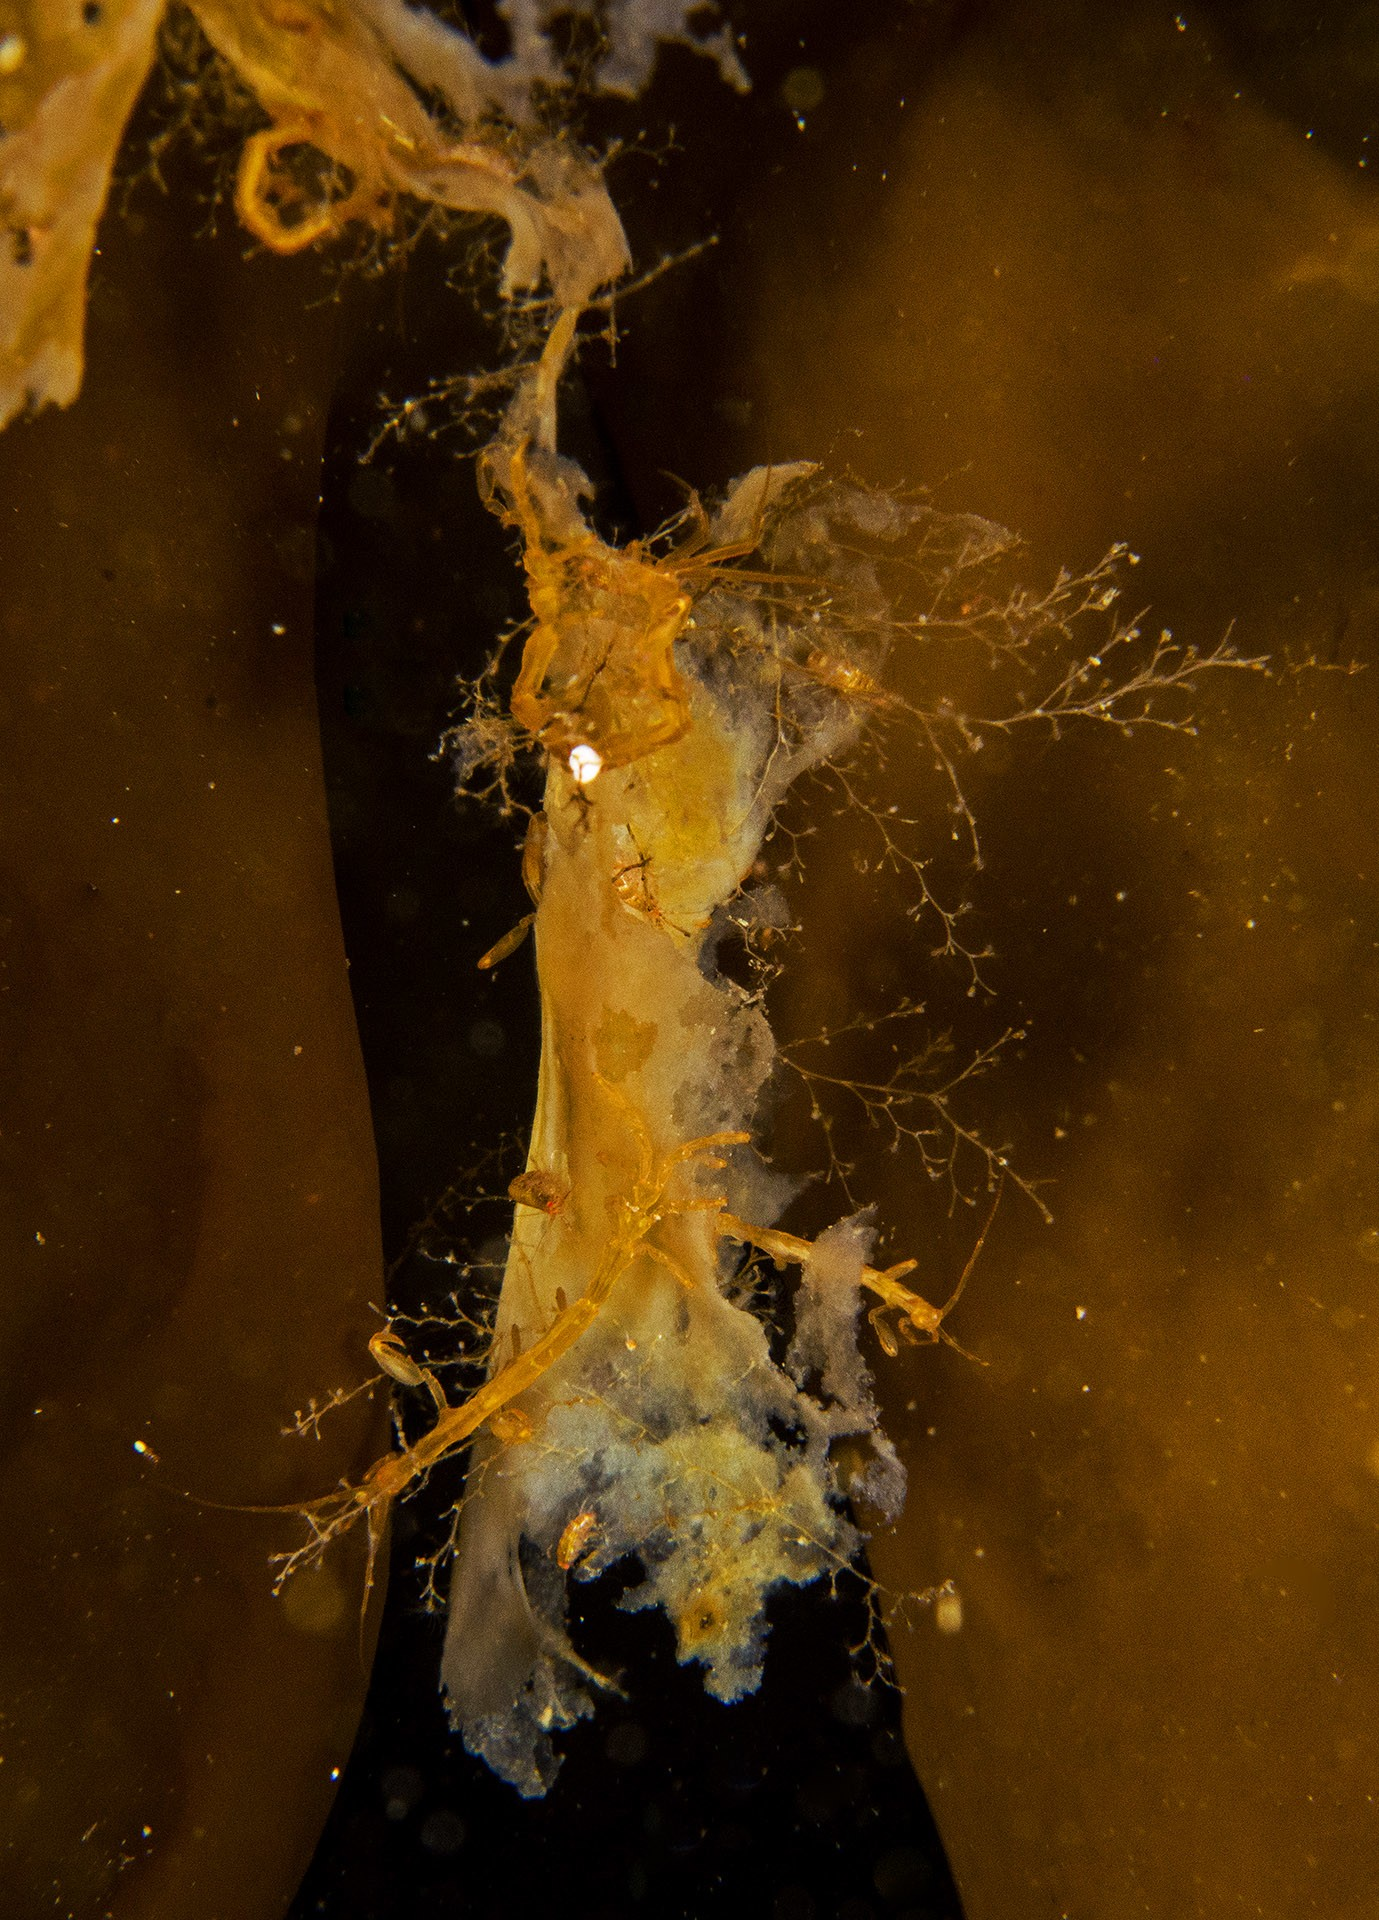 The ghost shrimp, also called skeleton shrimp, is one of Greenland's more reticent inhabitants. Each shrimp measures about 4 cm, and has a transparent, glass-like quality that inspired its name. It is often sighted snacking on kelp, its primary food source.